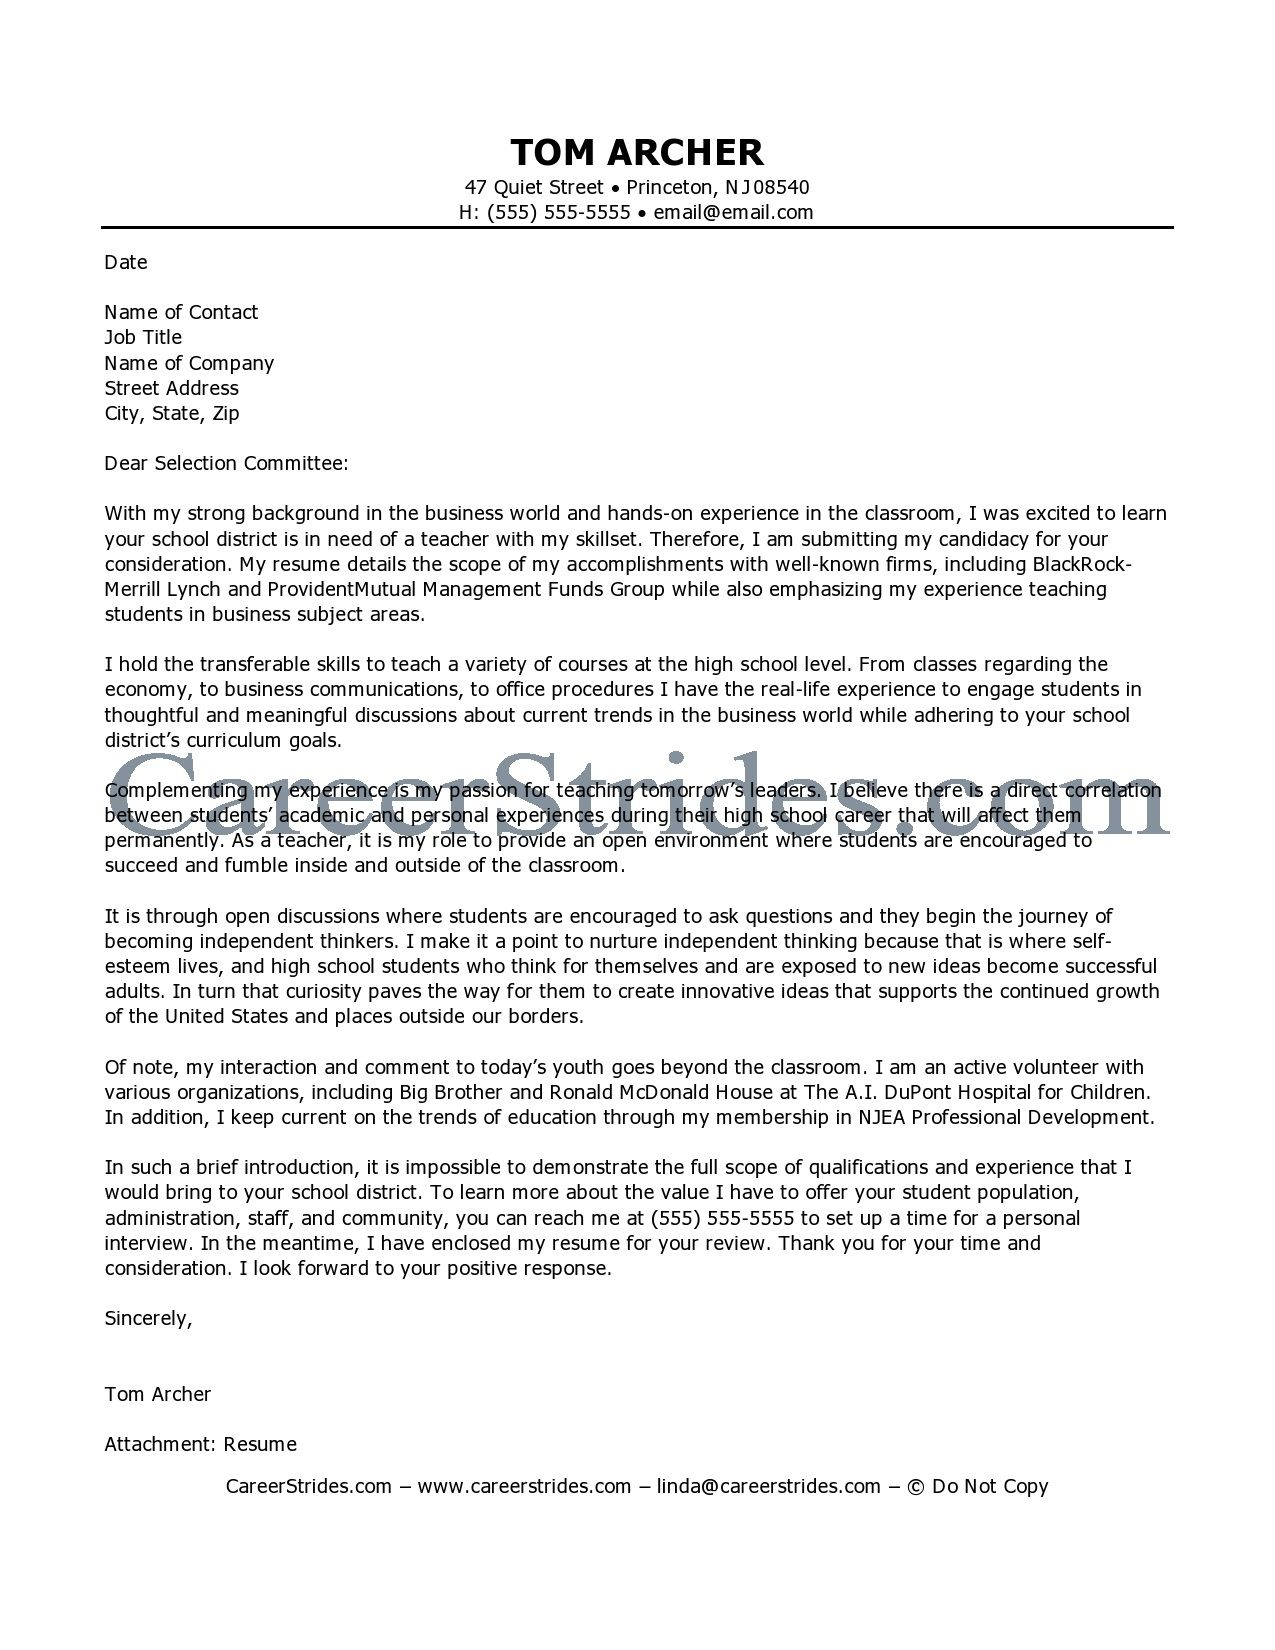 Teaching Cover Letters // Careerstrides.comBusiness Teacher